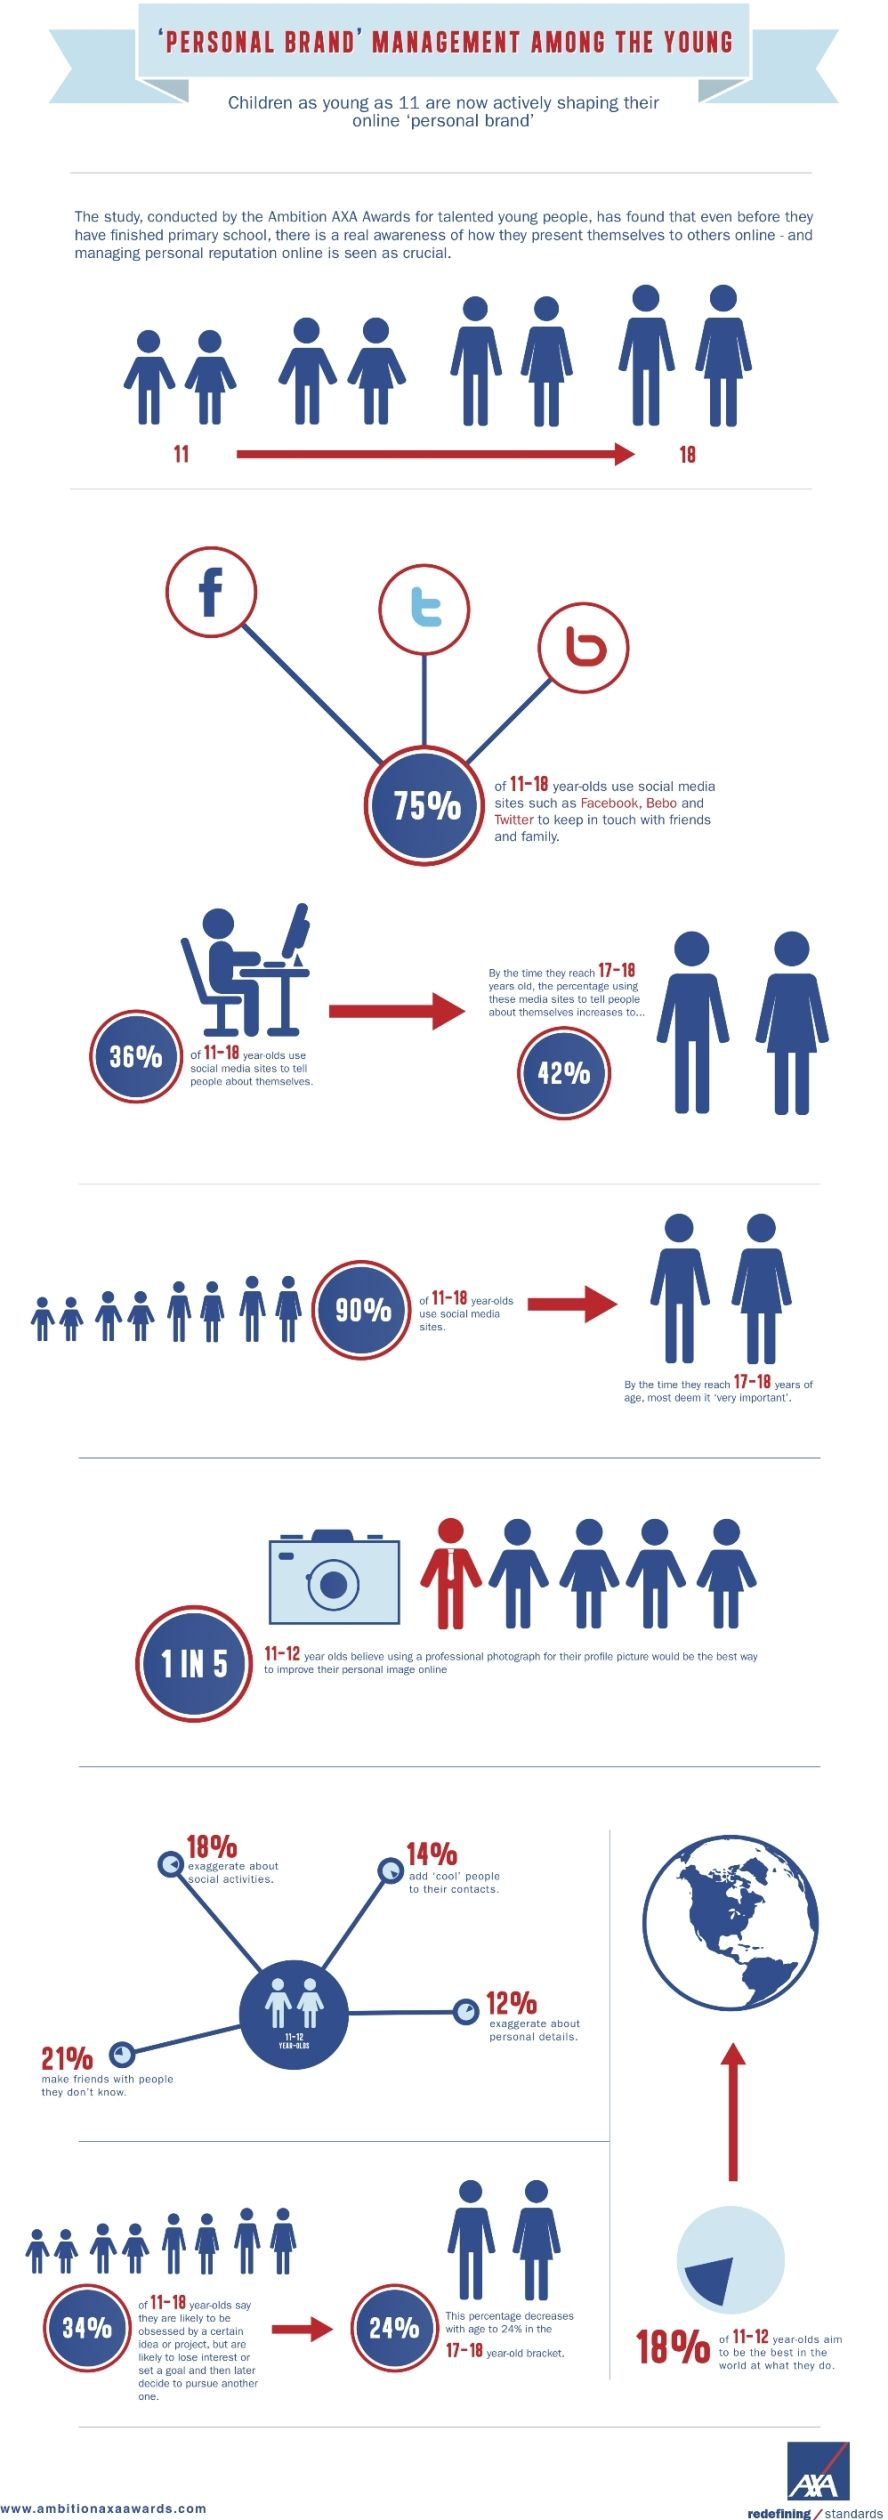 Personal brand management among the young #infographic